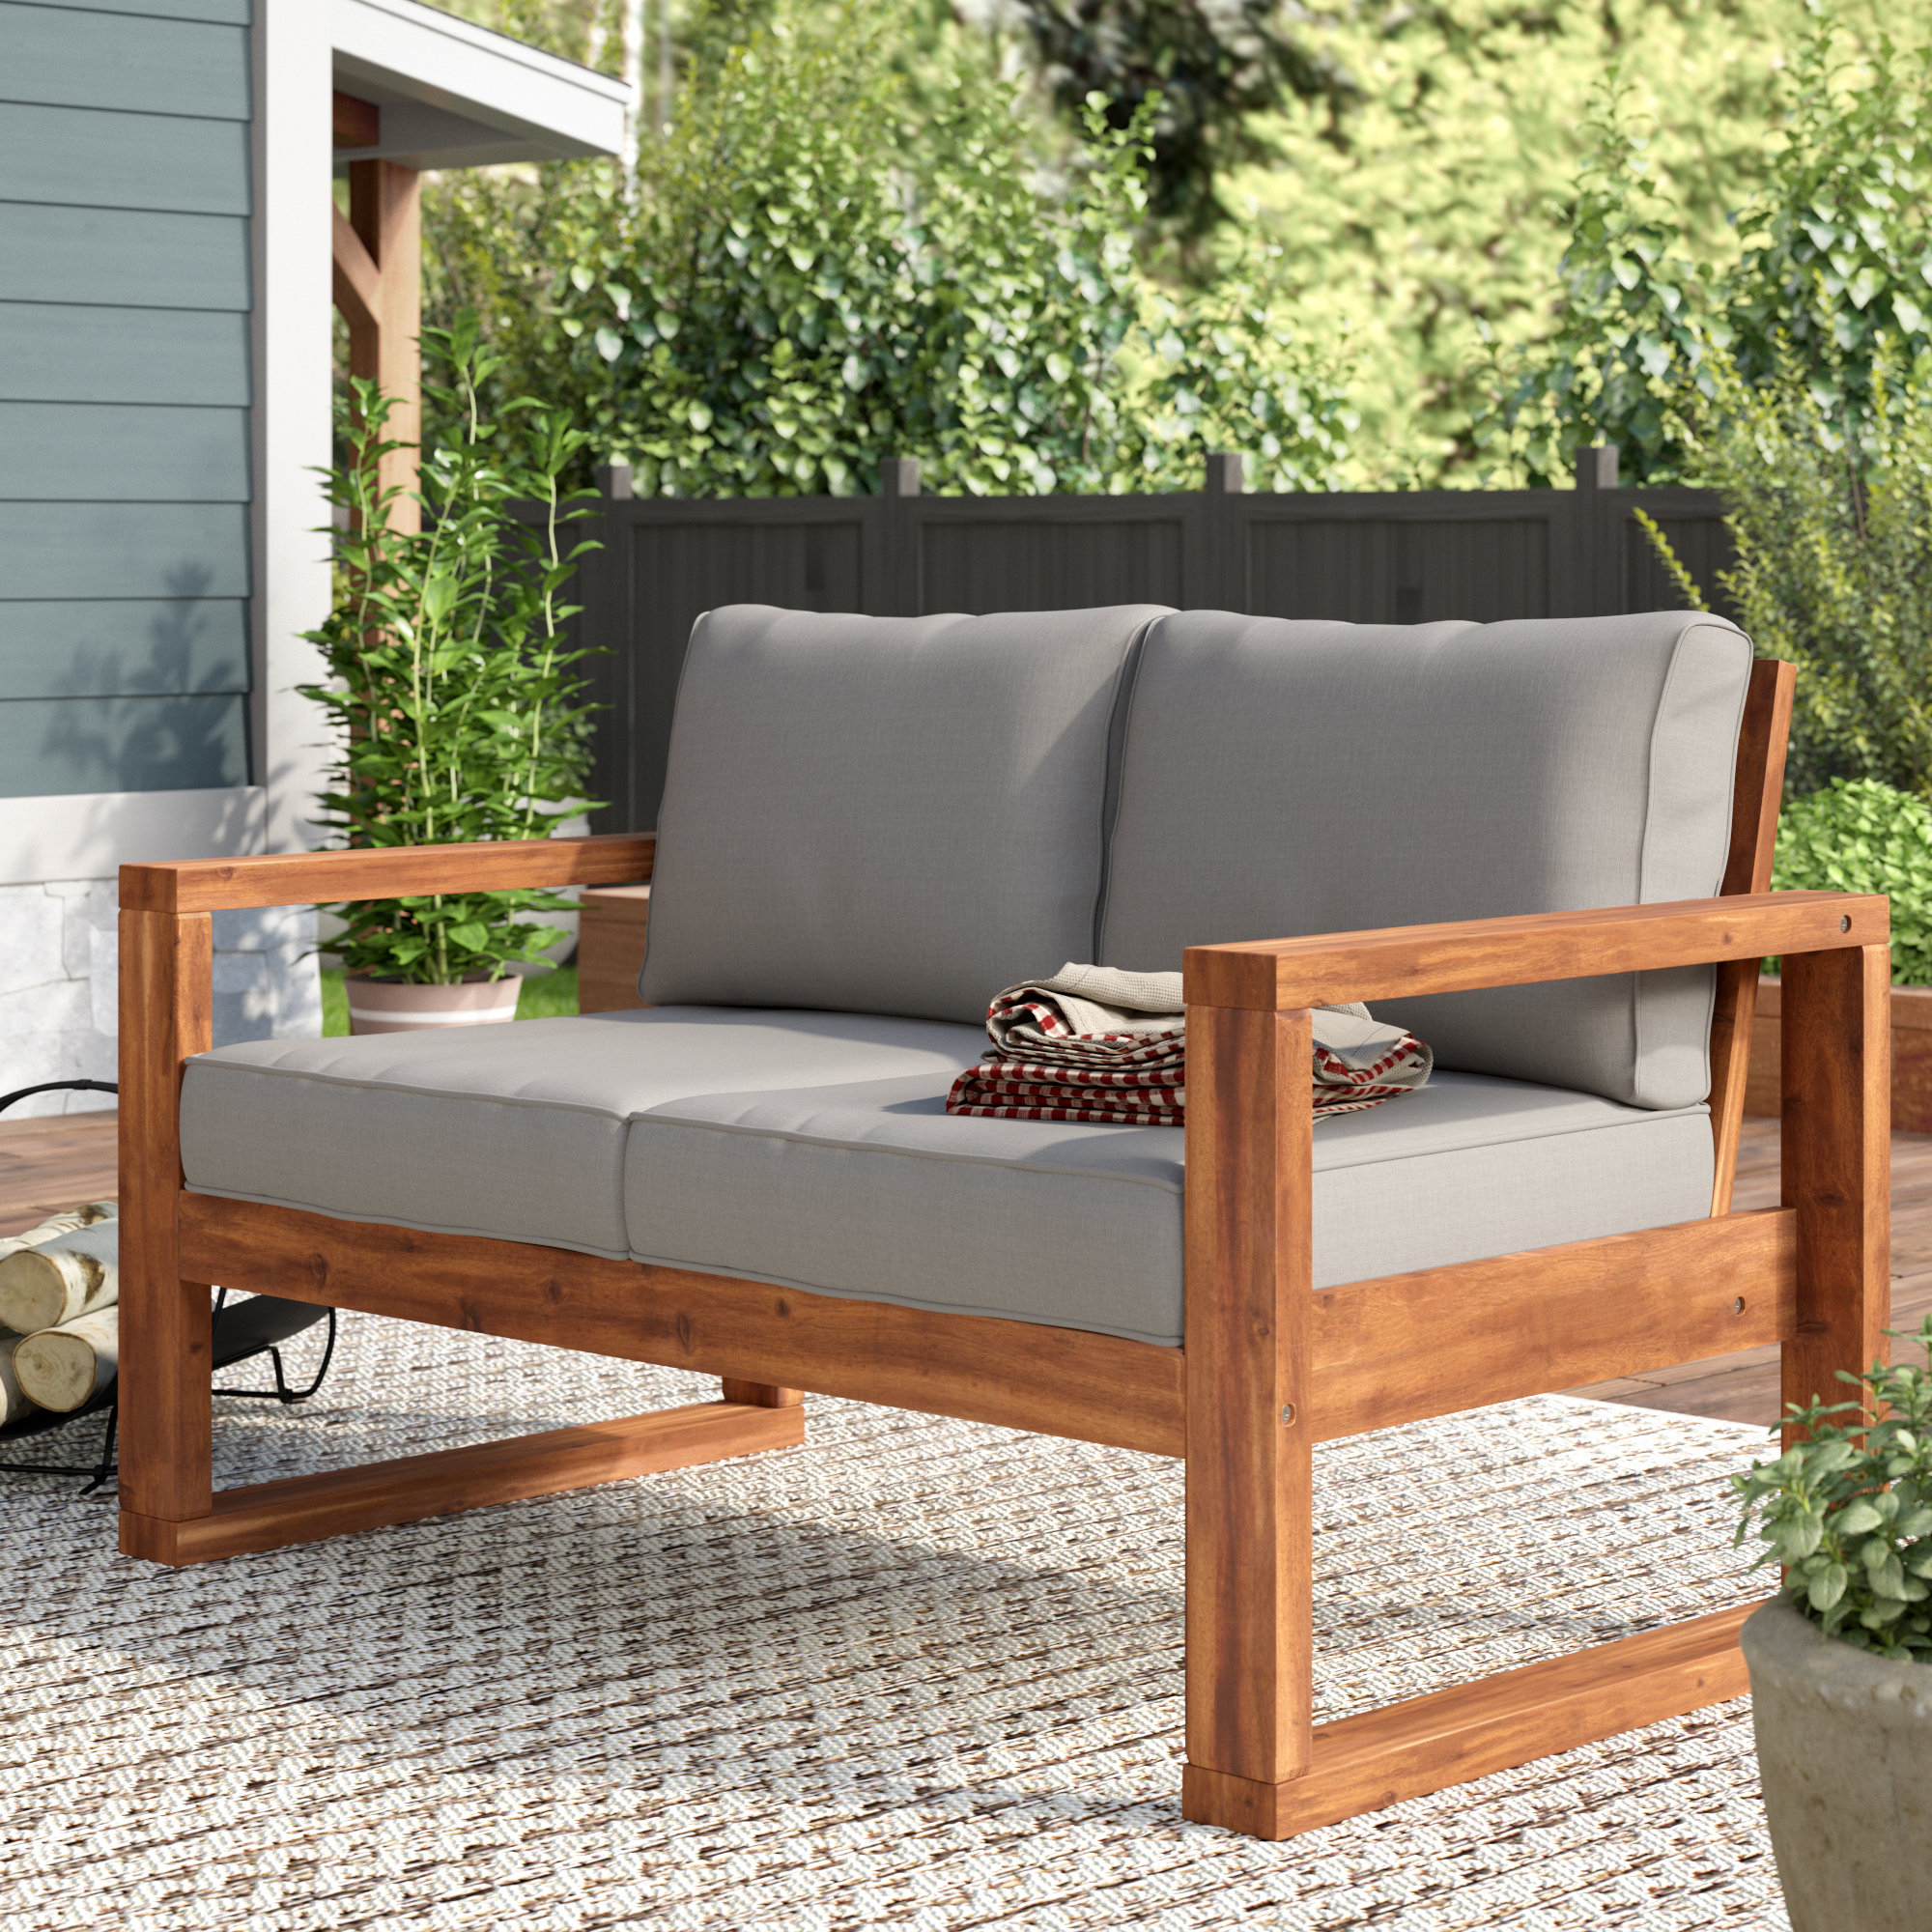 Fashionable Lyall Loveseat With Cushion Intended For Montford Teak Loveseats With Cushions (View 2 of 20)